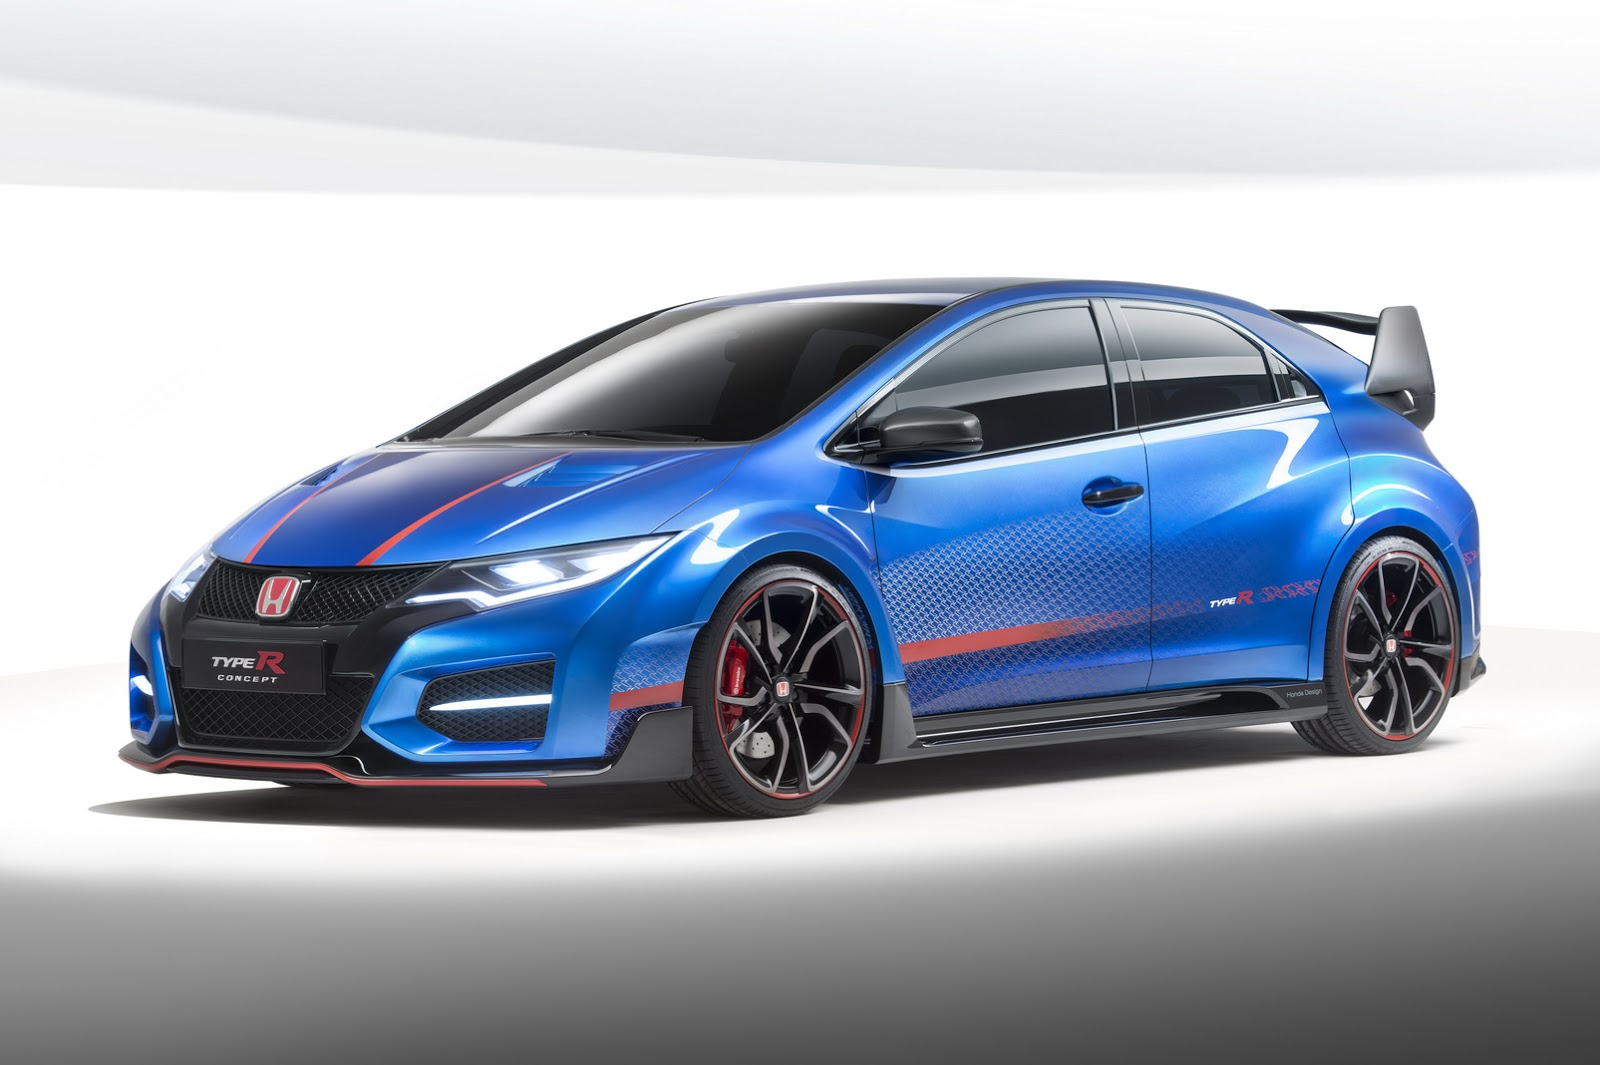 New honda civic type r concept unveiled gtspirit for Honda civic com